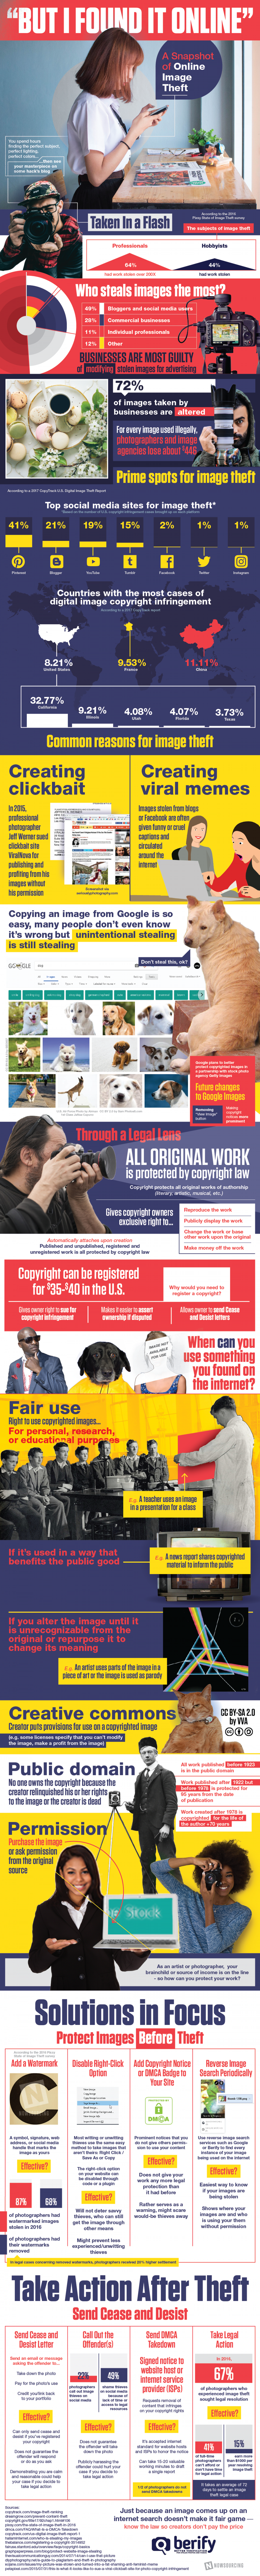 A Snapshot Of Online Image Theft Infographic